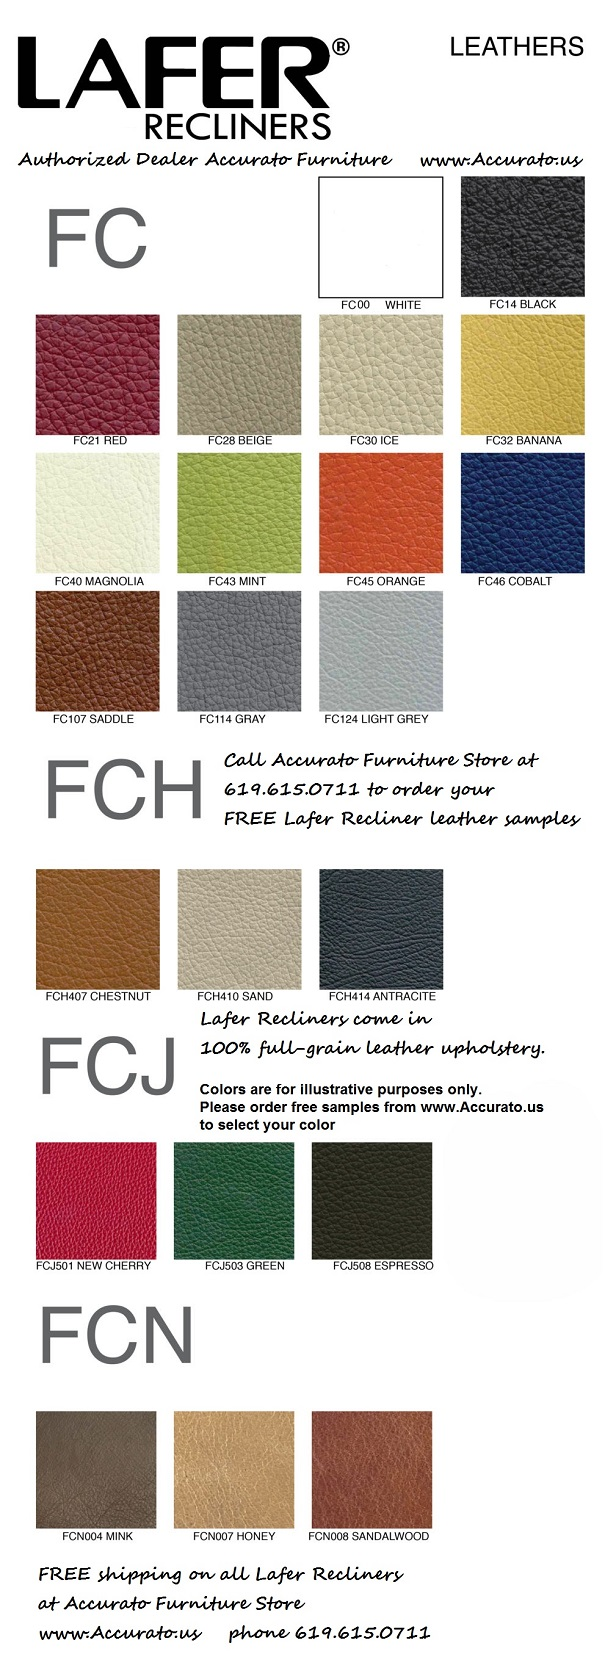 Lafer Recliner Leather Sample Colors are free at Accurato